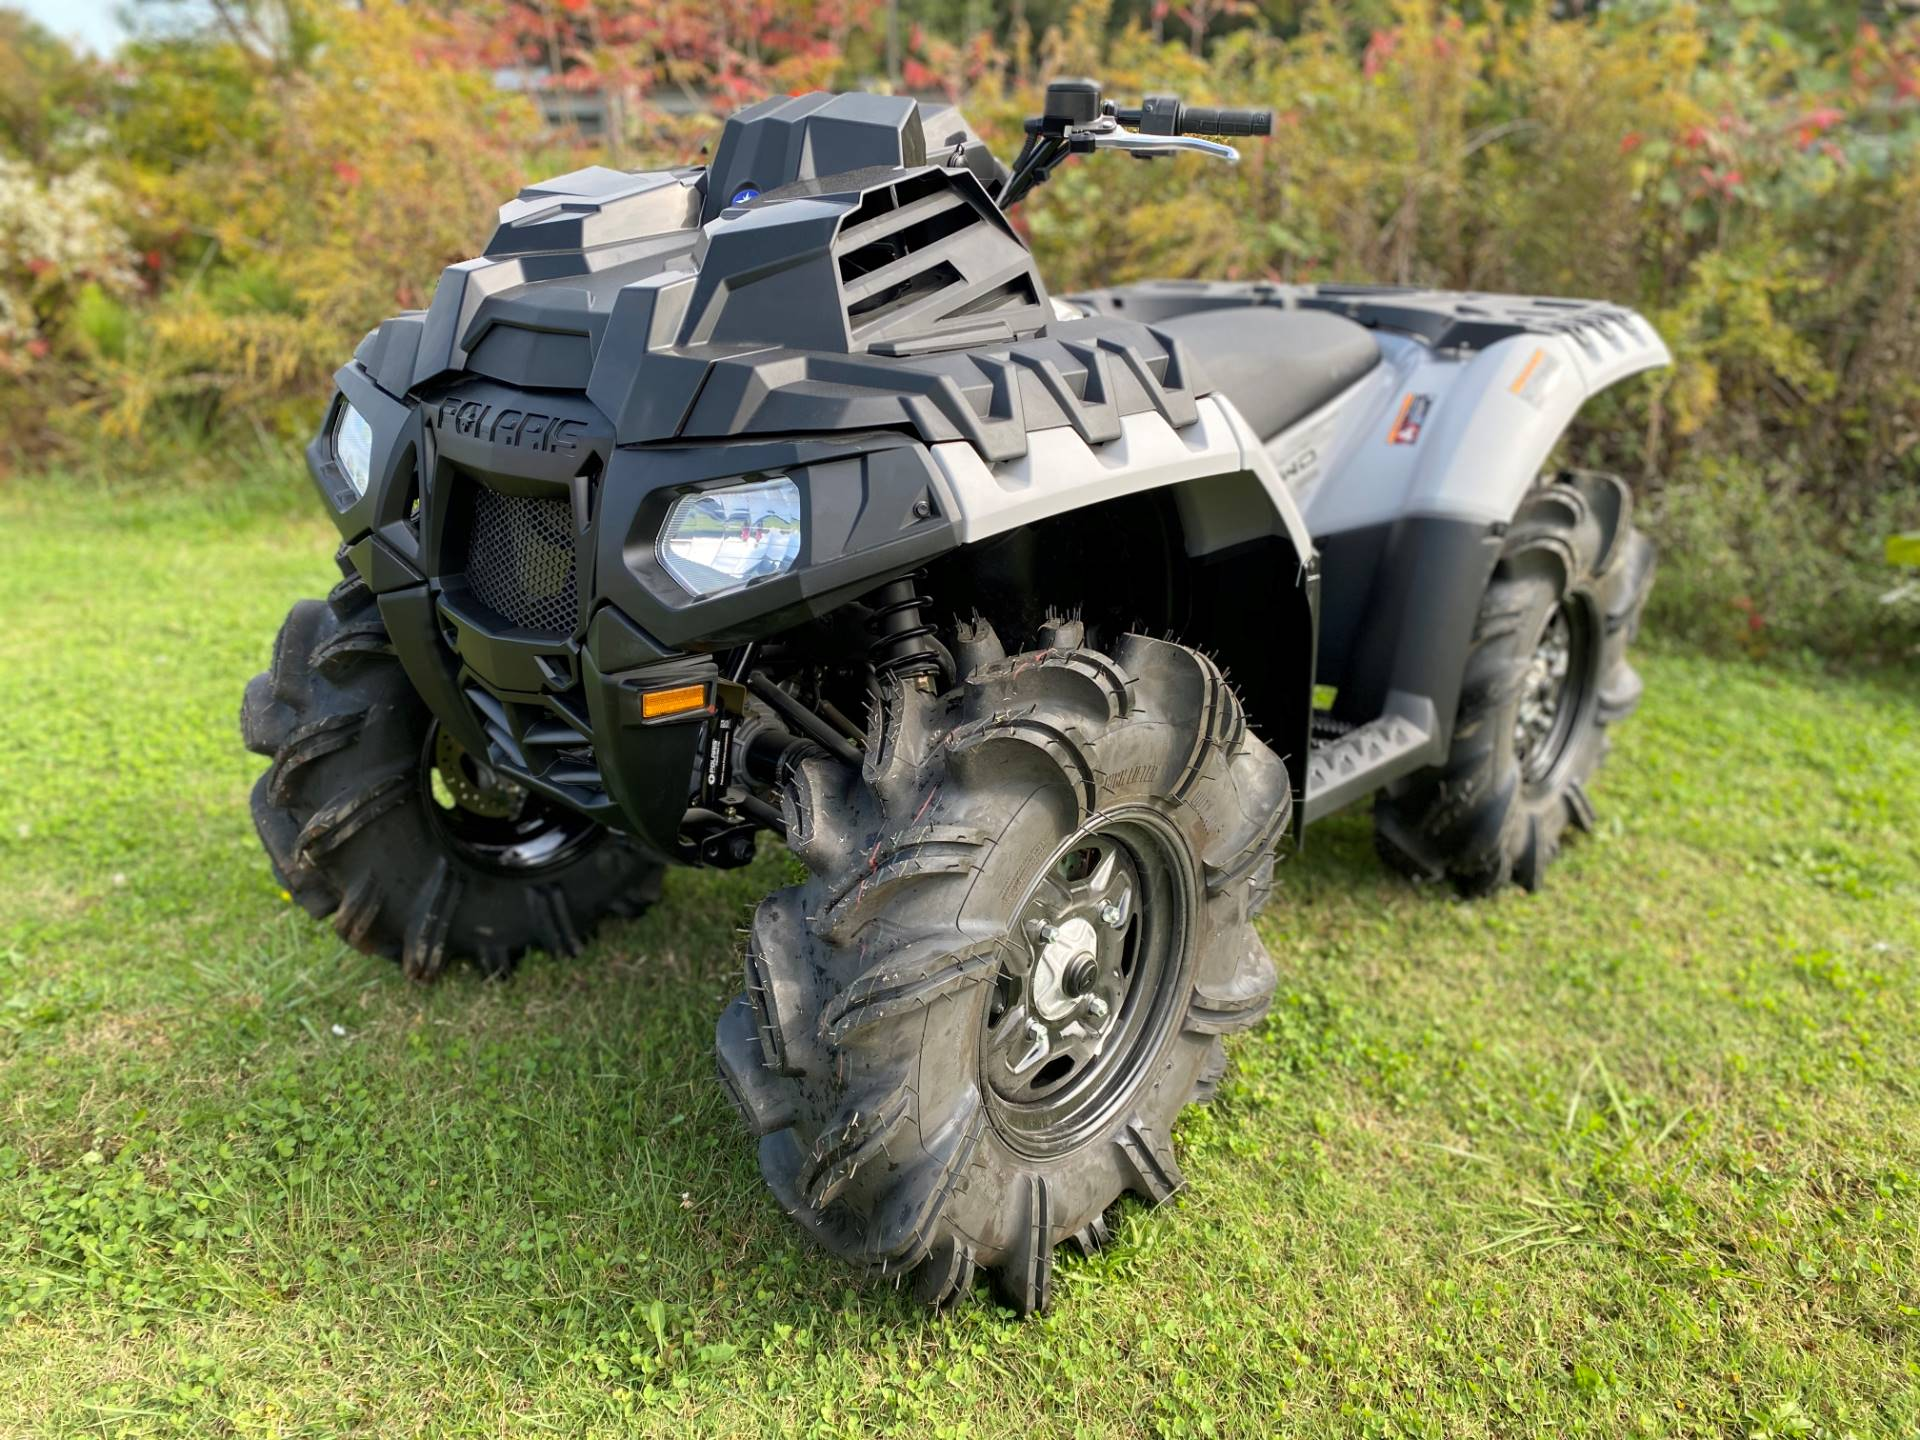 2021 Polaris Sportsman 850 High Lifter Edition in Greer, South Carolina - Photo 3